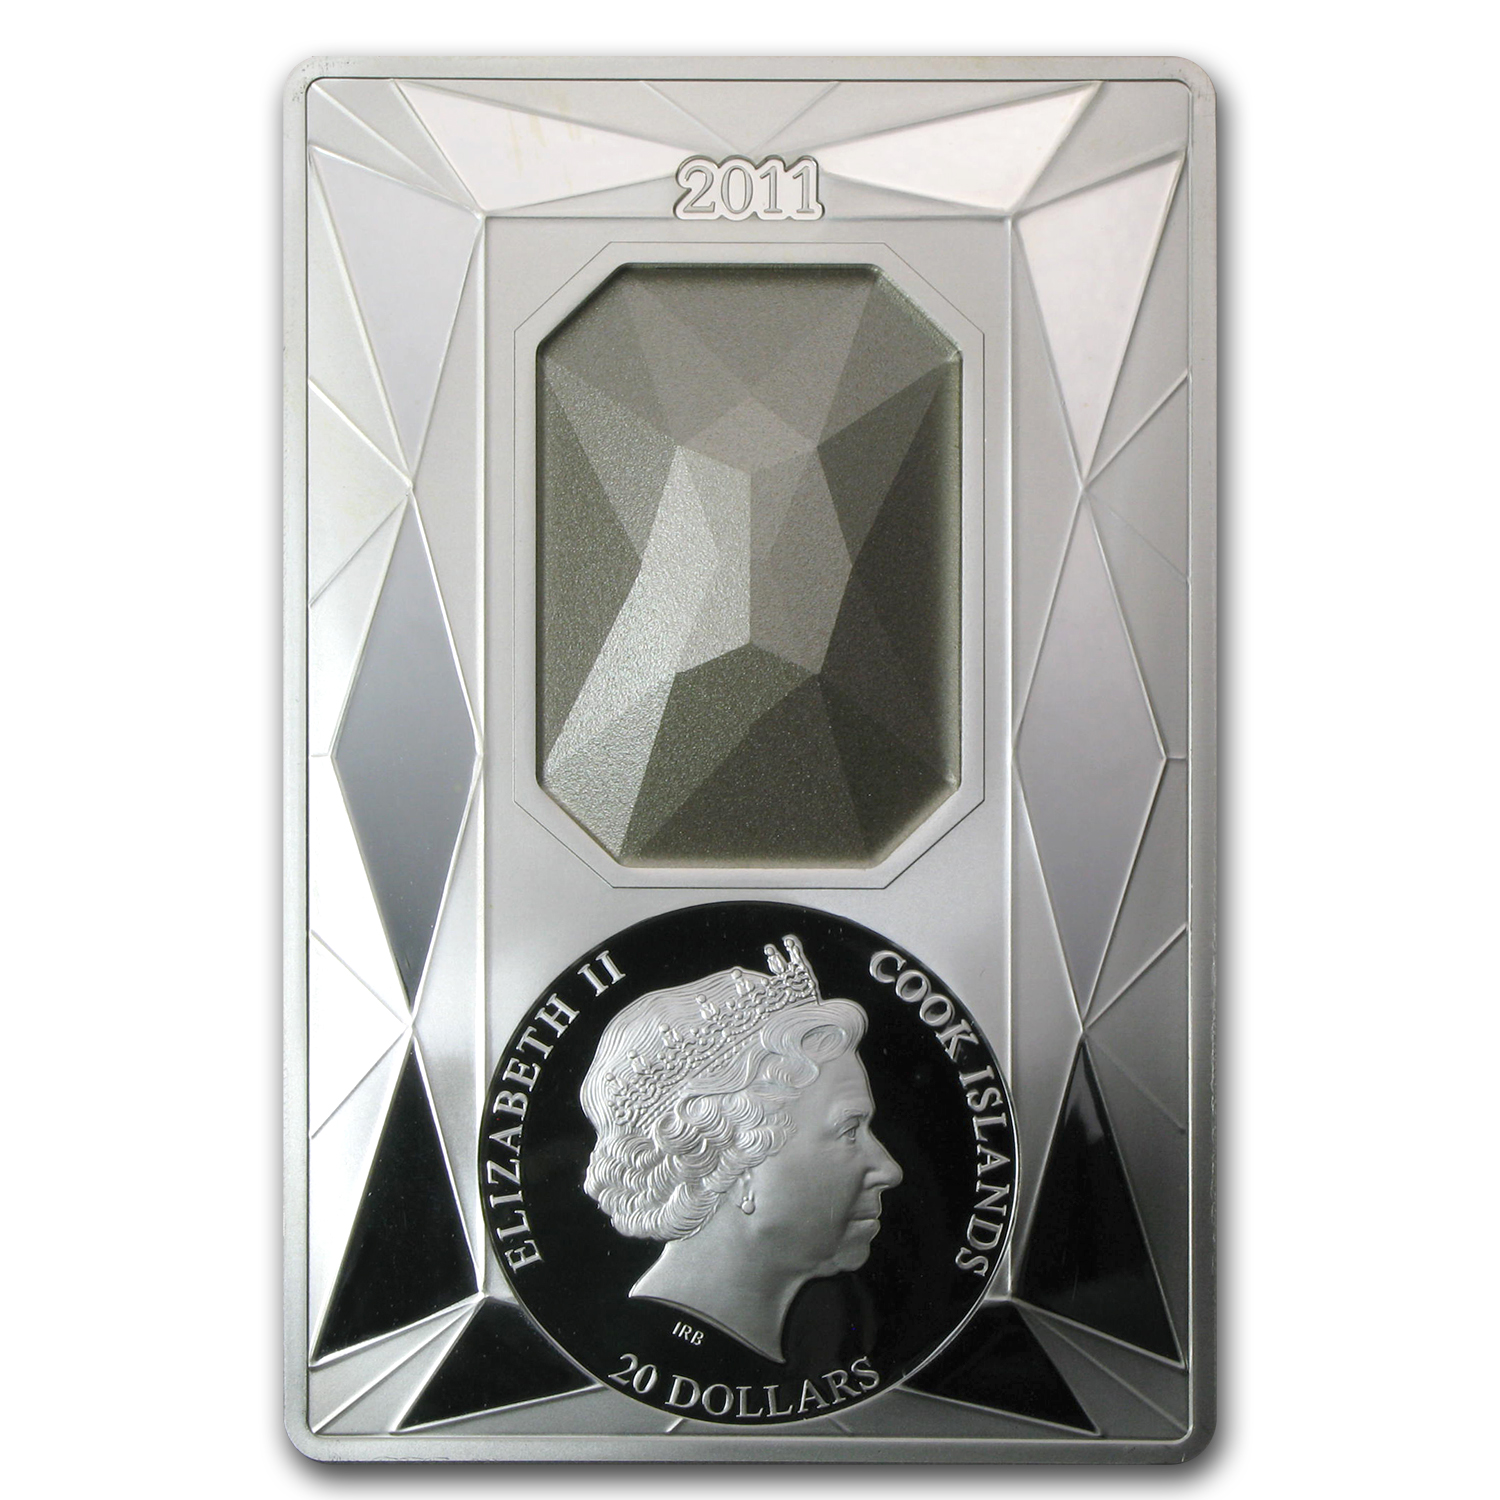 2011 Cook Islands Proof Silver $20 Luxury Line Swarovski Crystal